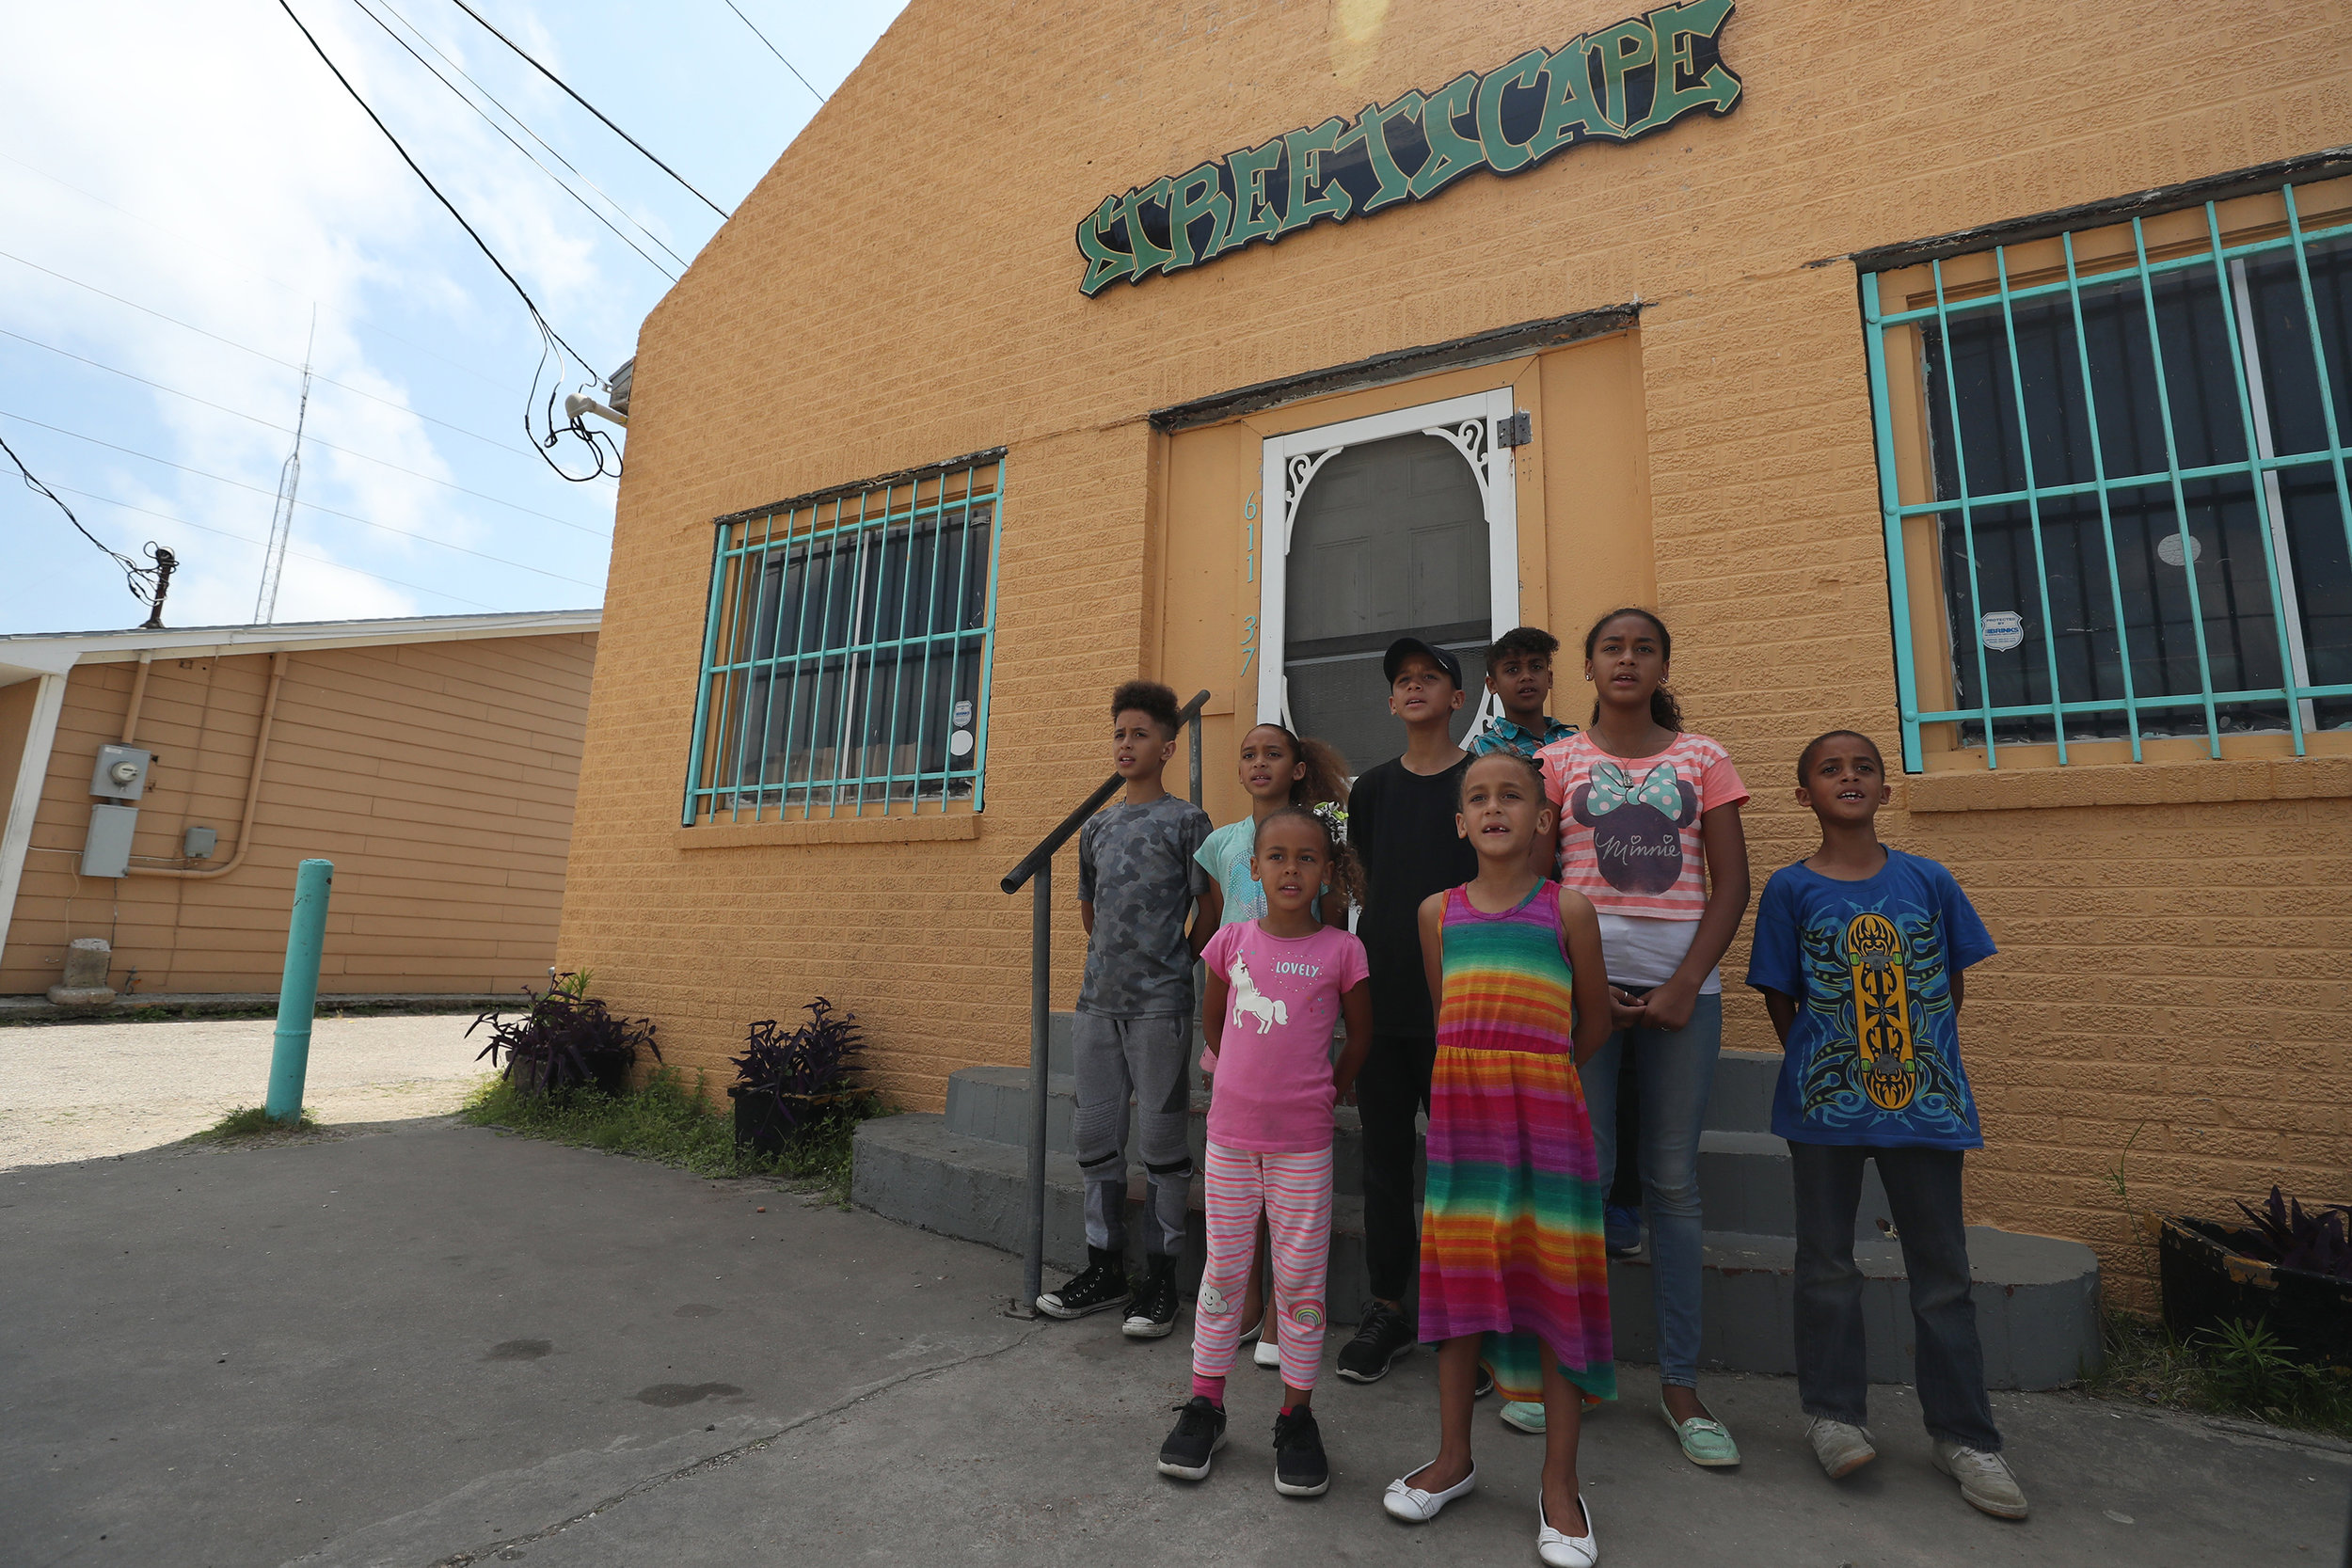 The K White family band practice a song in front of Streetscape Café before traveling to the Meridian for a performance on Friday, May 11, 2018. The eight oldest children have created a choir and perform at special services, churches and other city events.